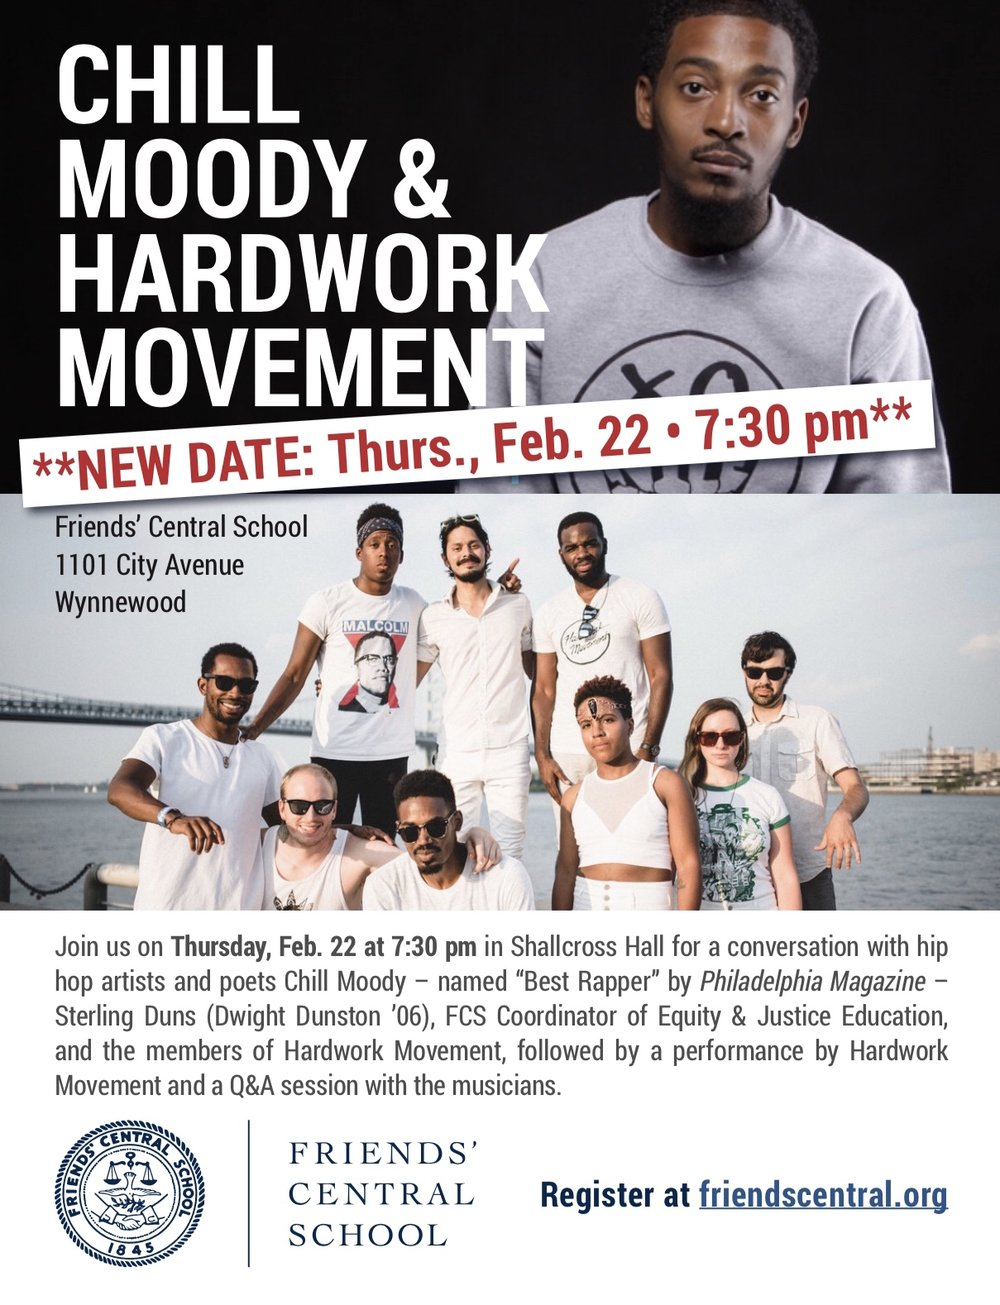 Chill Moody & Hardwork Movement PANEL DISSUSCION Thursday Feb 22nd - 7:30pm  -